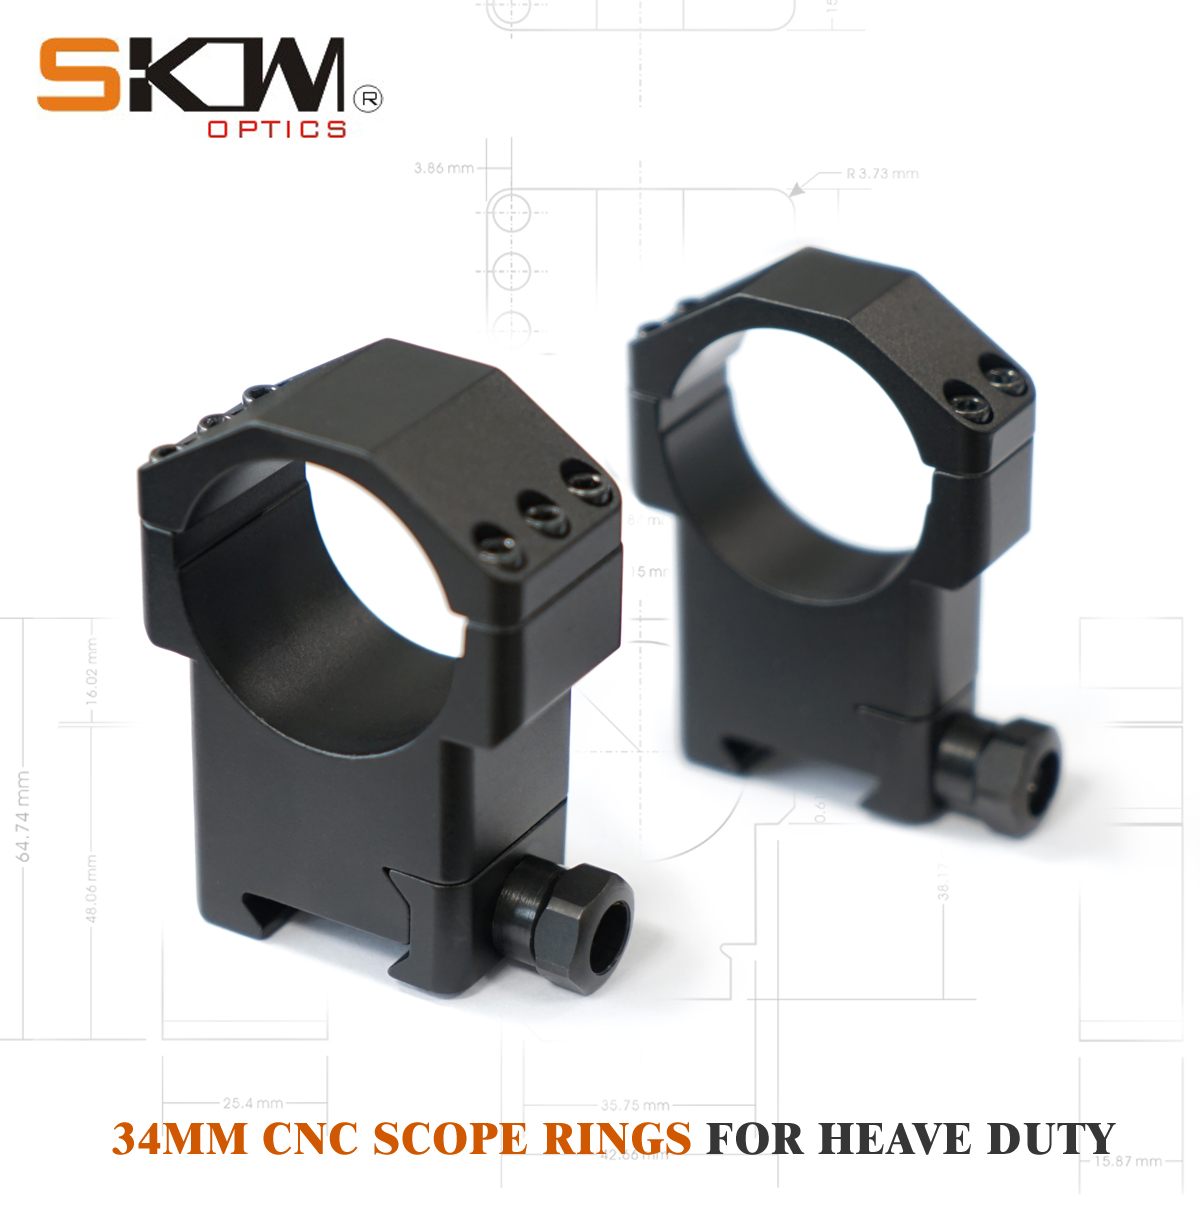 SKWGEAR Tactical 34mm scope rings RifleScope Mount Fit Picatinny Mil CNC riflescope ring image